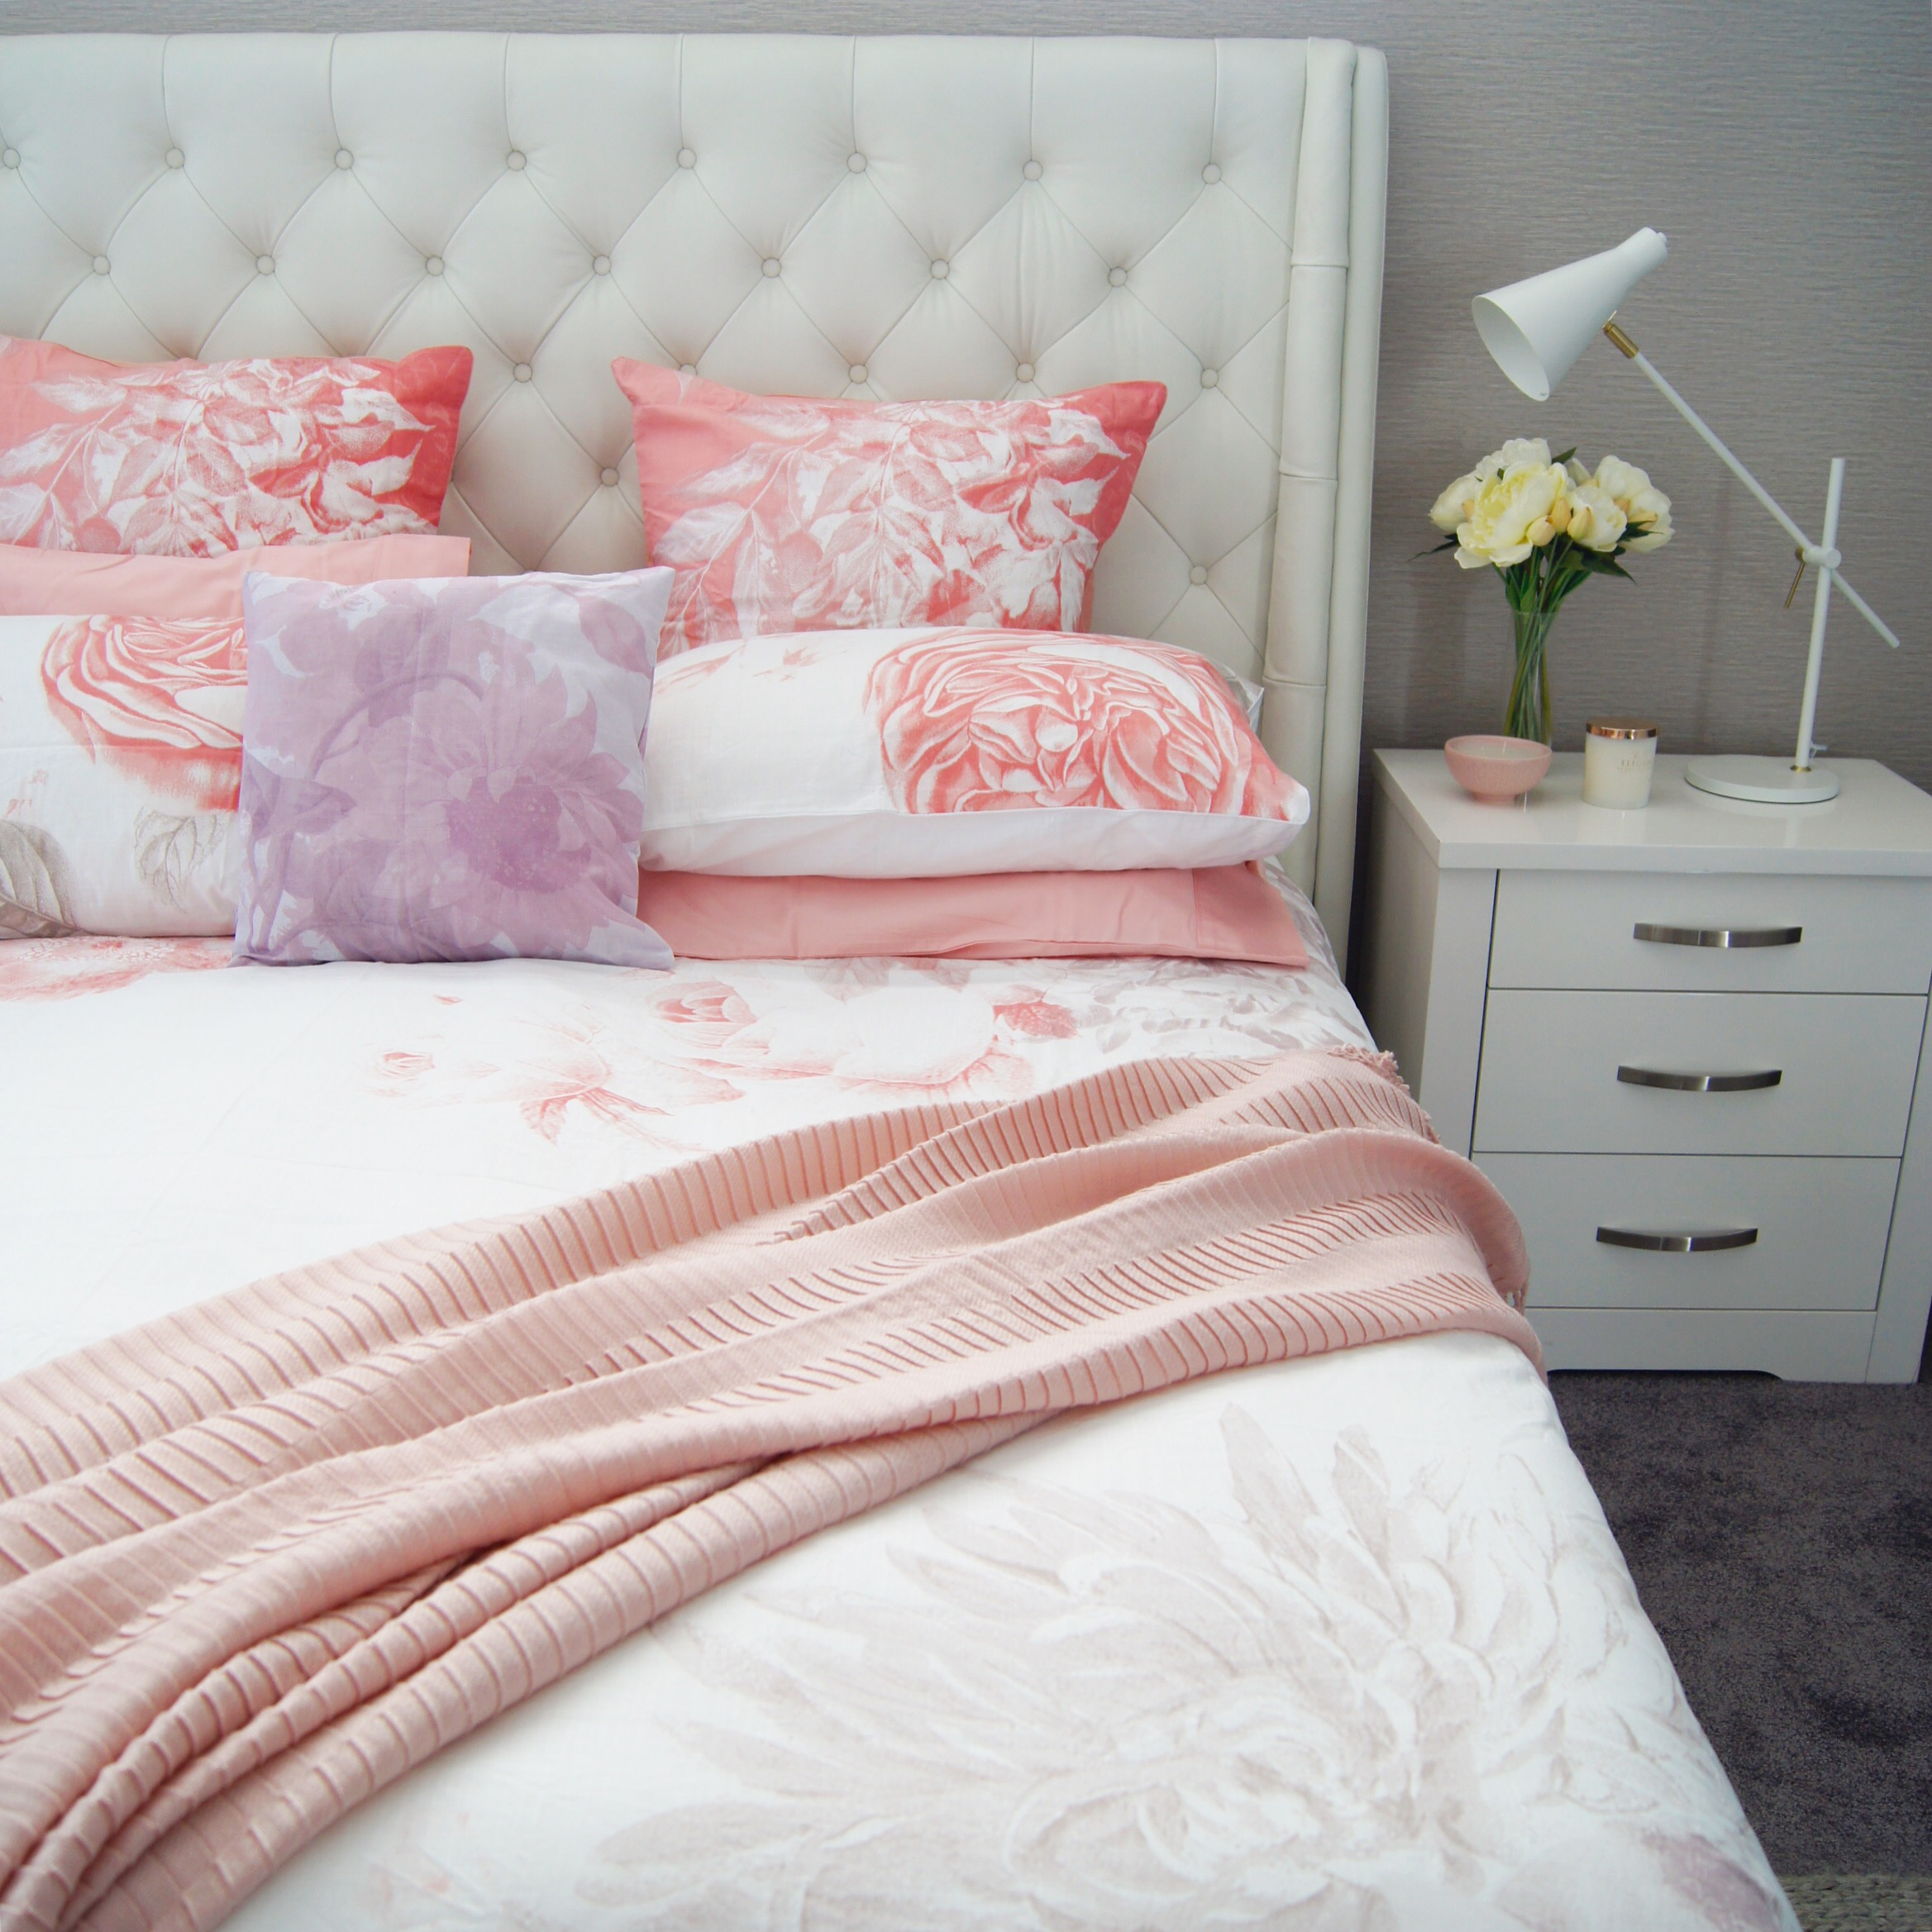 iu0027ve styled it above with the cotton pillowcases in pink and calais throw in blush if this is too much pink for your partner then simply go for a different